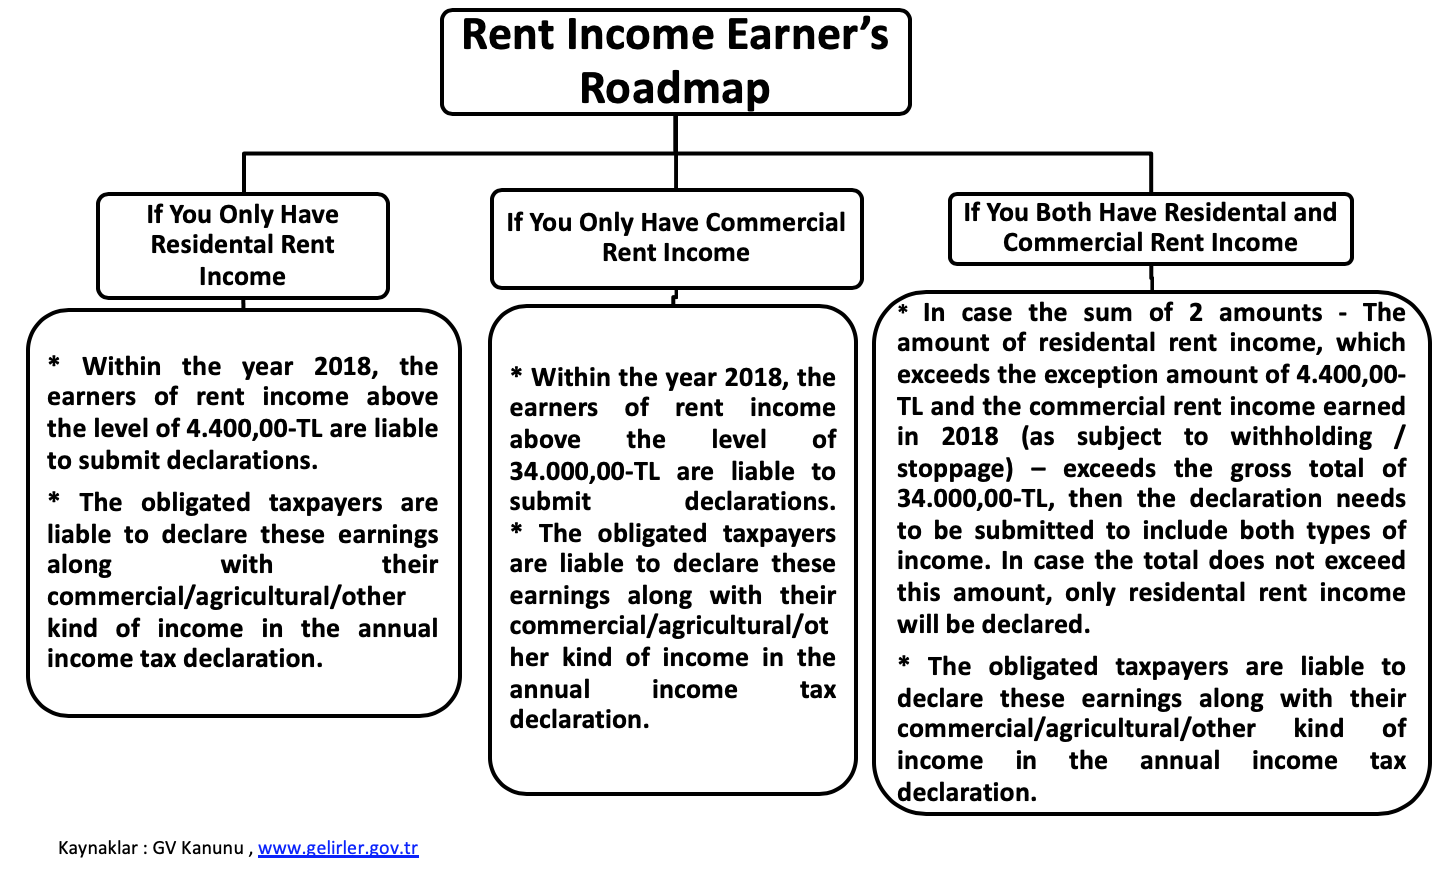 Tax Map For Rent Income Earners 2019